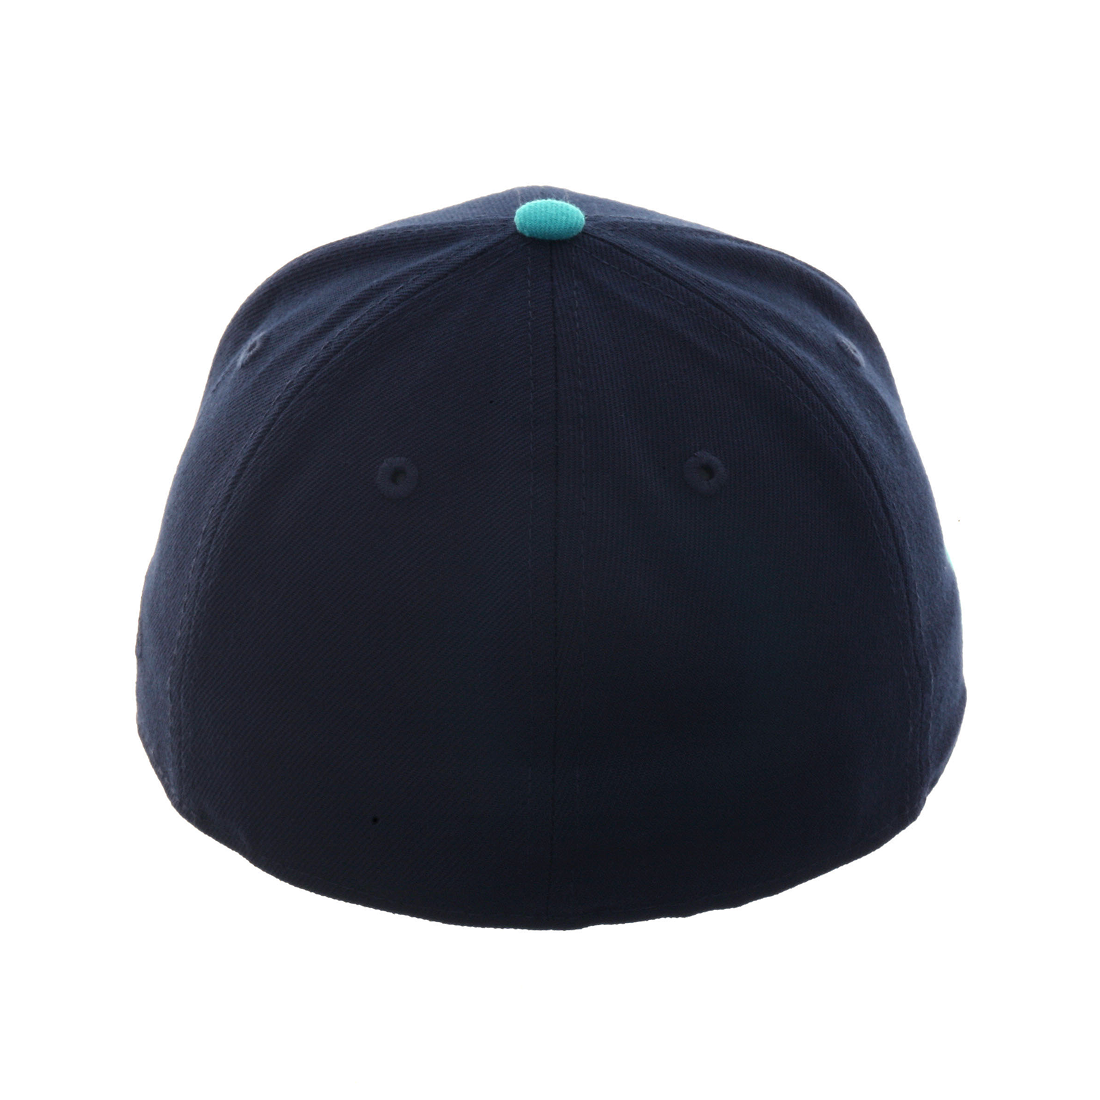 Exclusive New Era 59Fifty Skull Chief Hat - 2T Navy, Teal